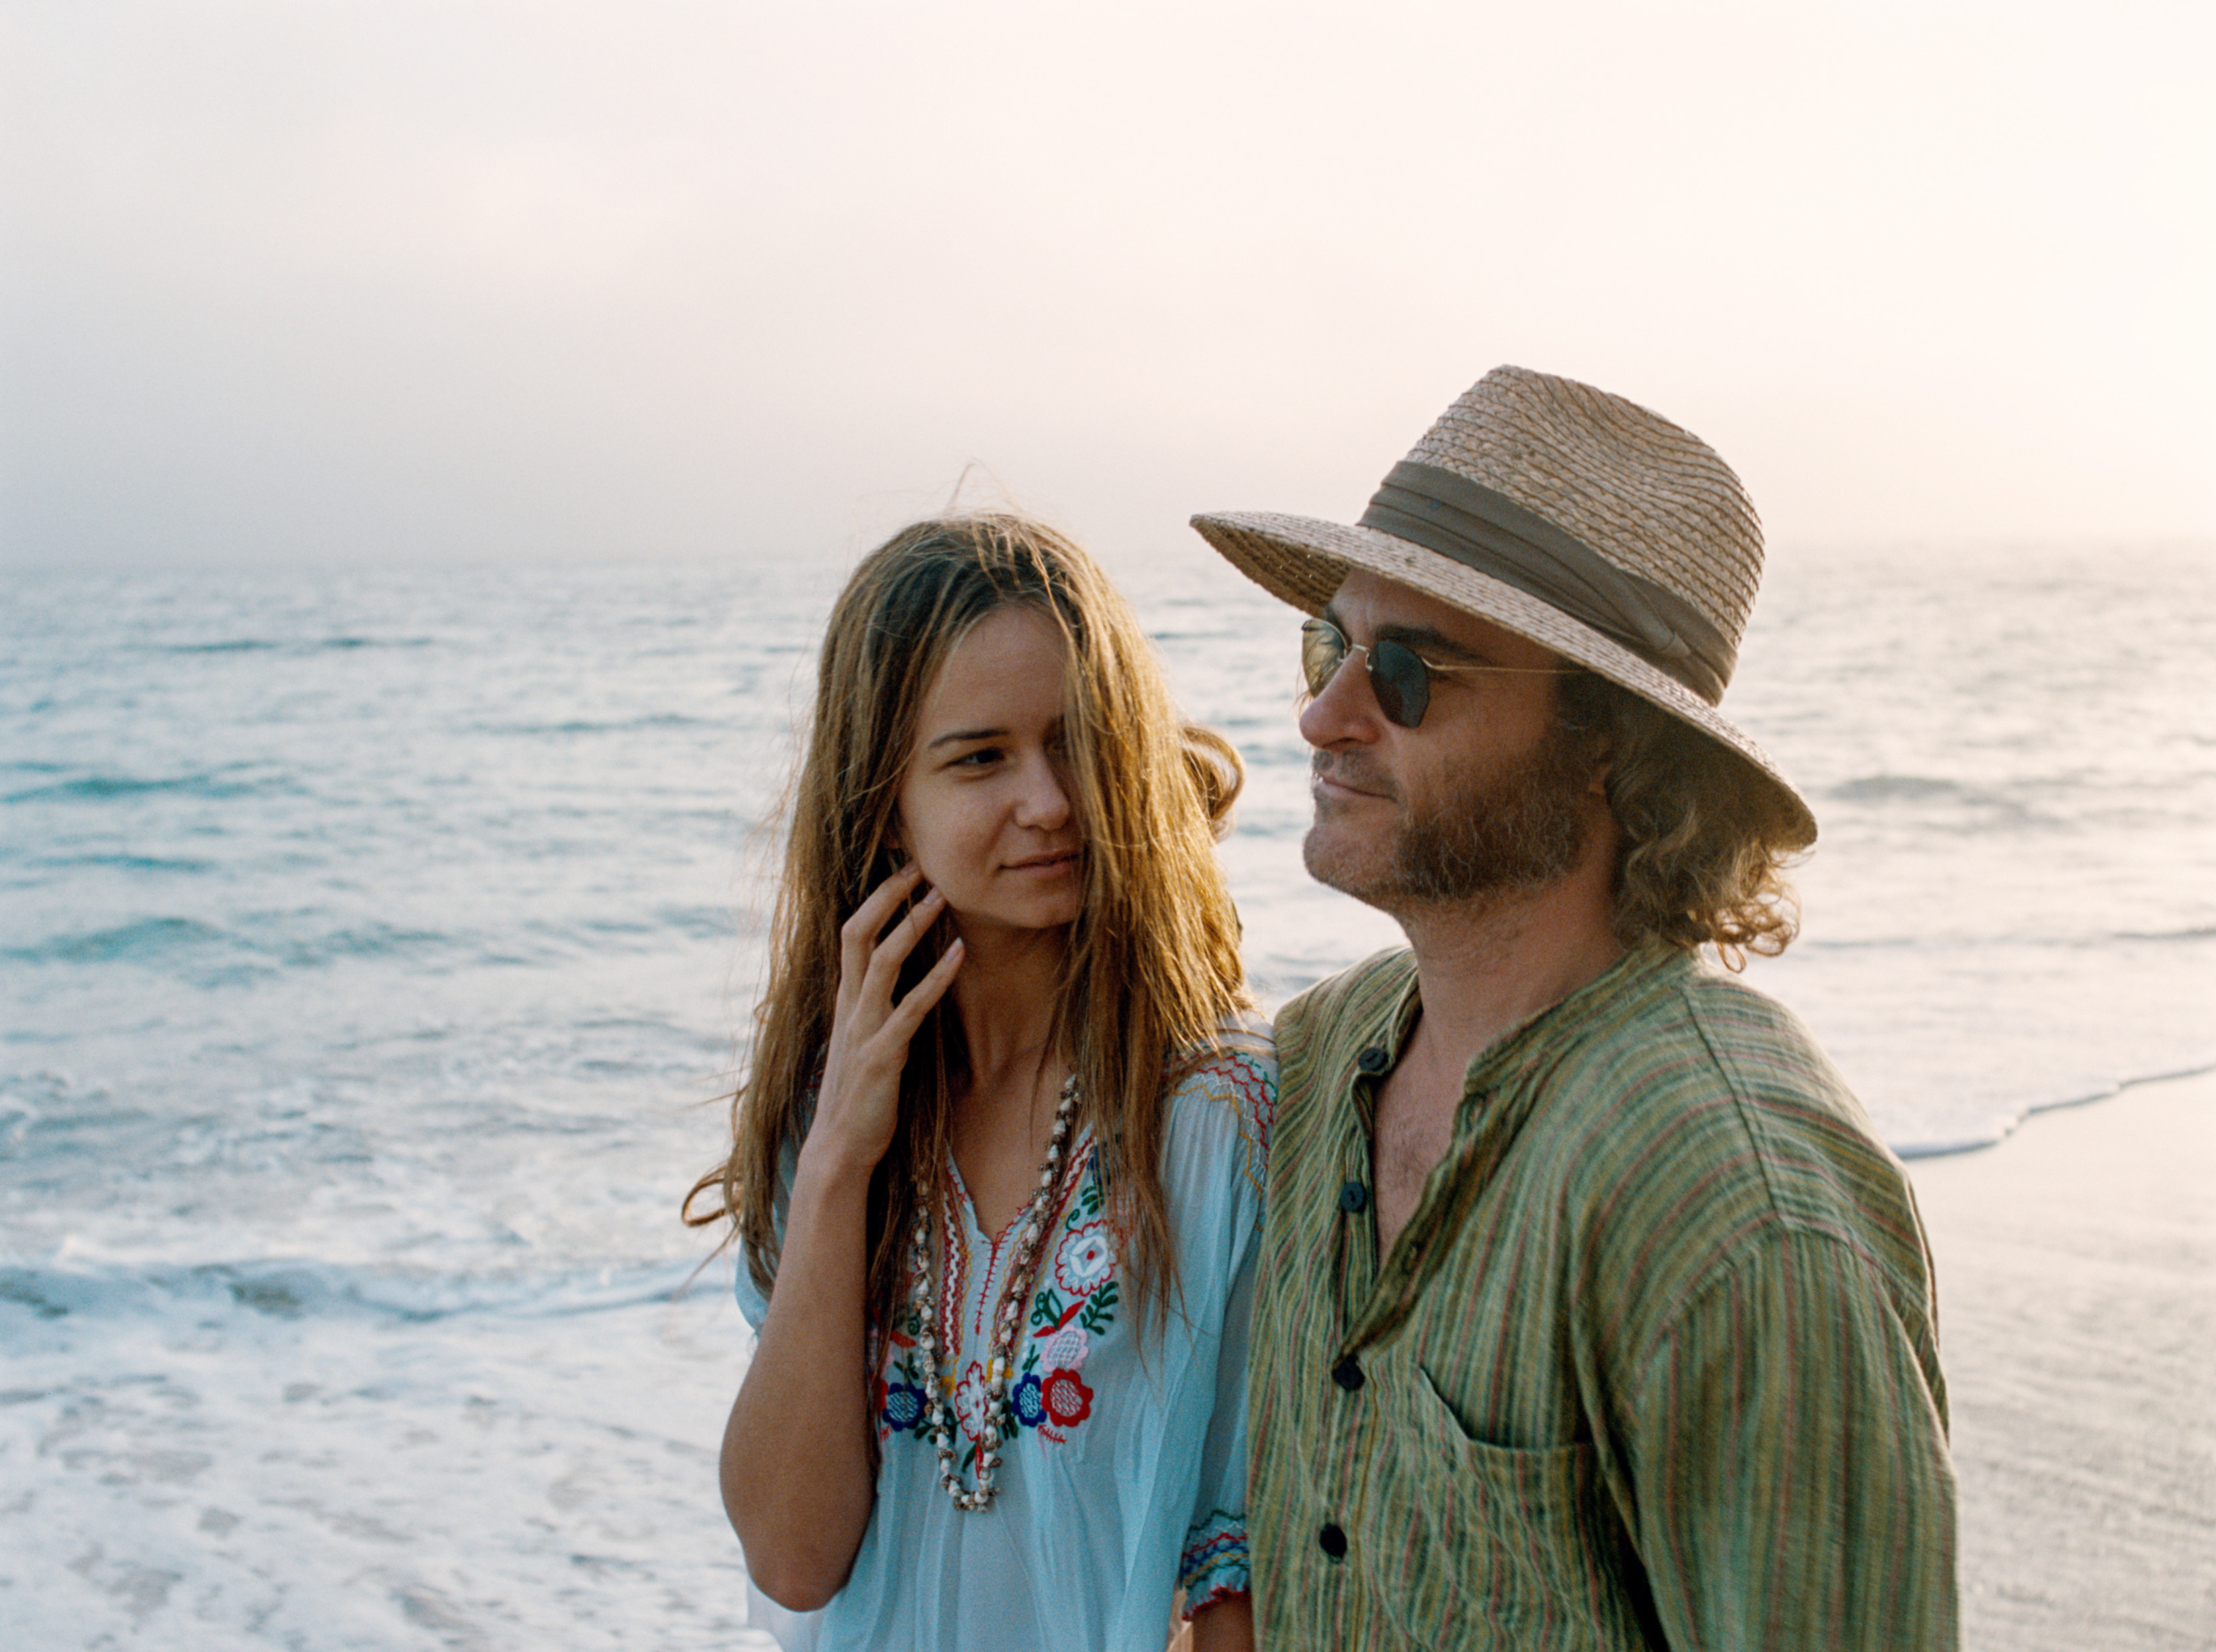 INHERENT VICE, from left: Katherine Waterston, Joaquin Phoenix, 2014. ©Warner Bros./courtesy Everett Collection